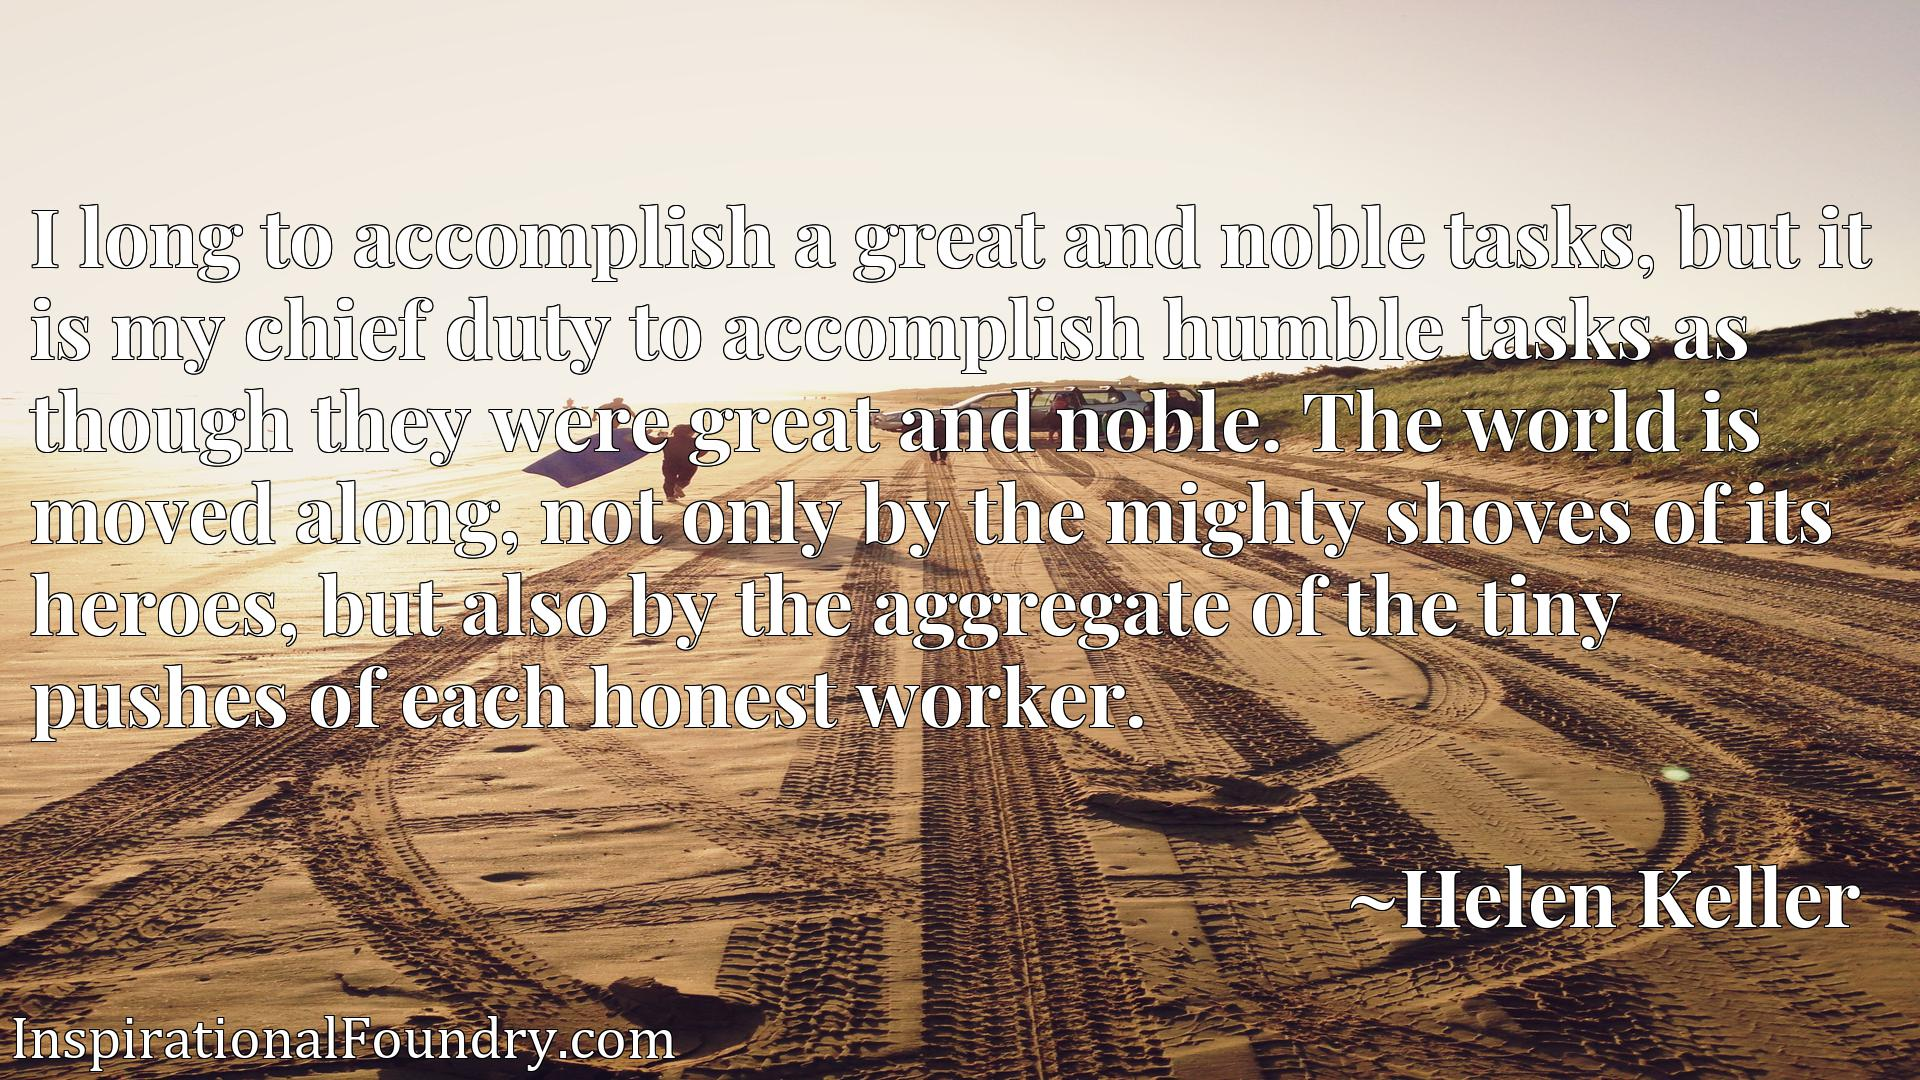 I long to accomplish a great and noble tasks, but it is my chief duty to accomplish humble tasks as though they were great and noble. The world is moved along, not only by the mighty shoves of its heroes, but also by the aggregate of the tiny pushes of each honest worker.